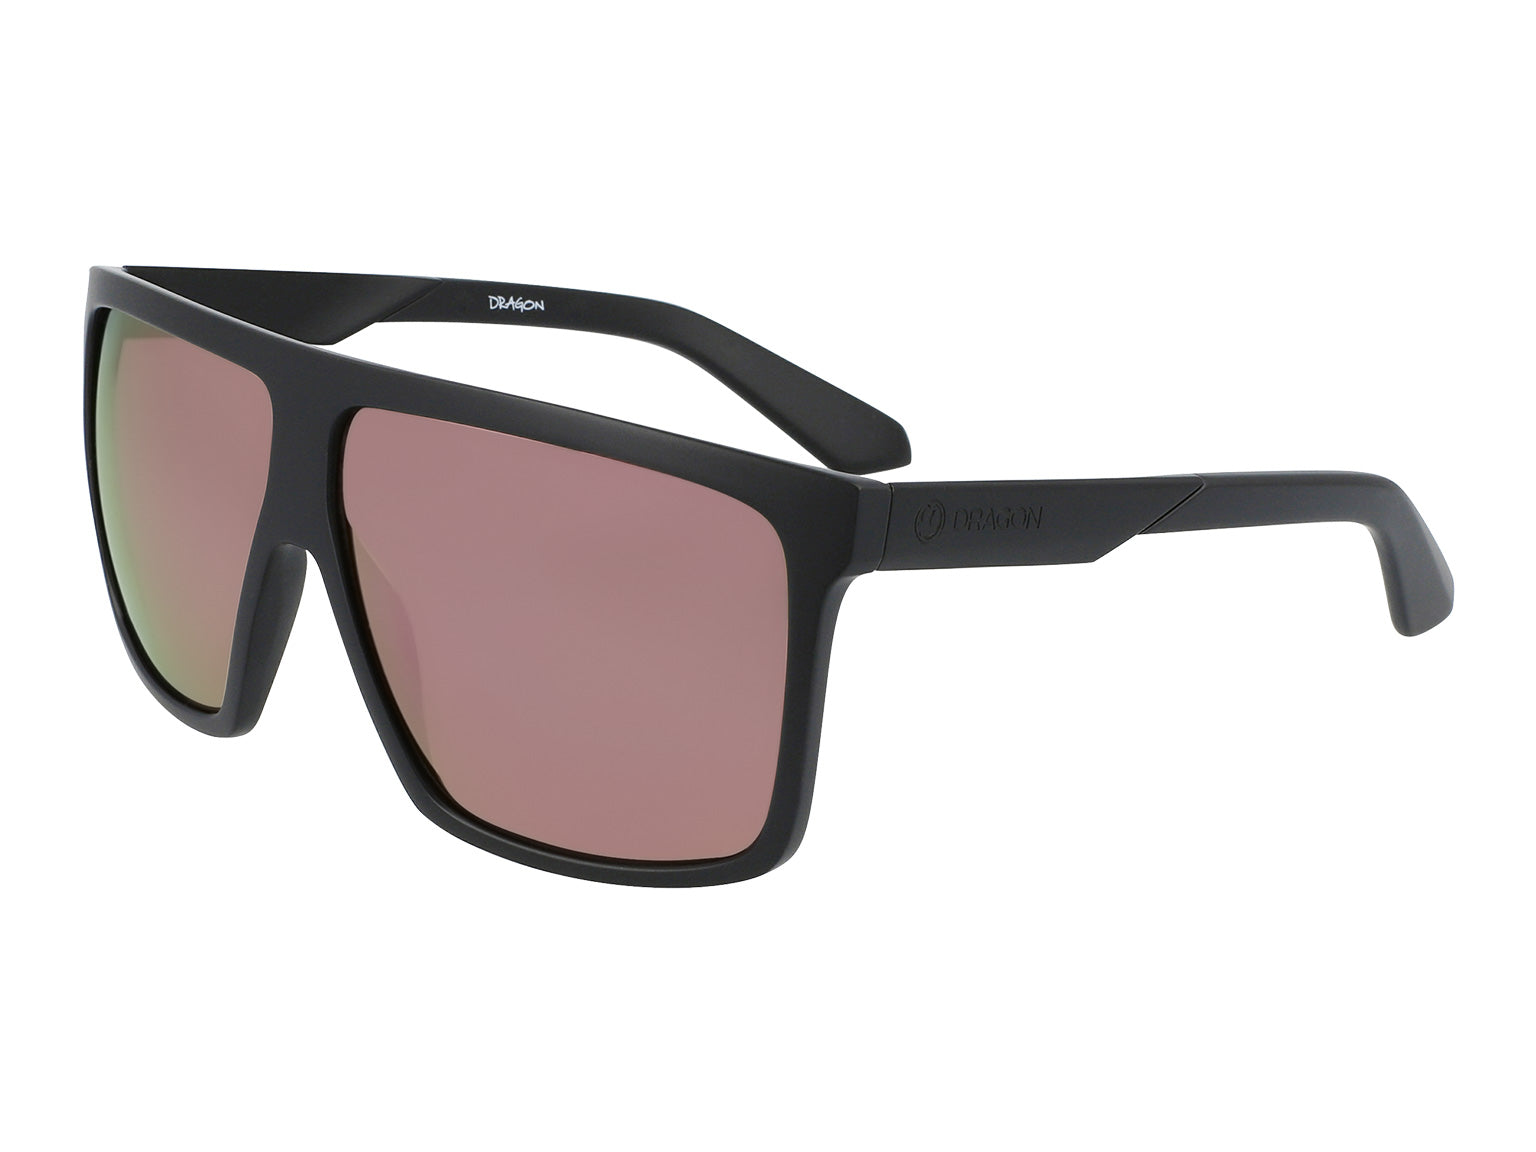 ULTRA - Matte Black ; with Lumalens Rose Gold Ionized Lens